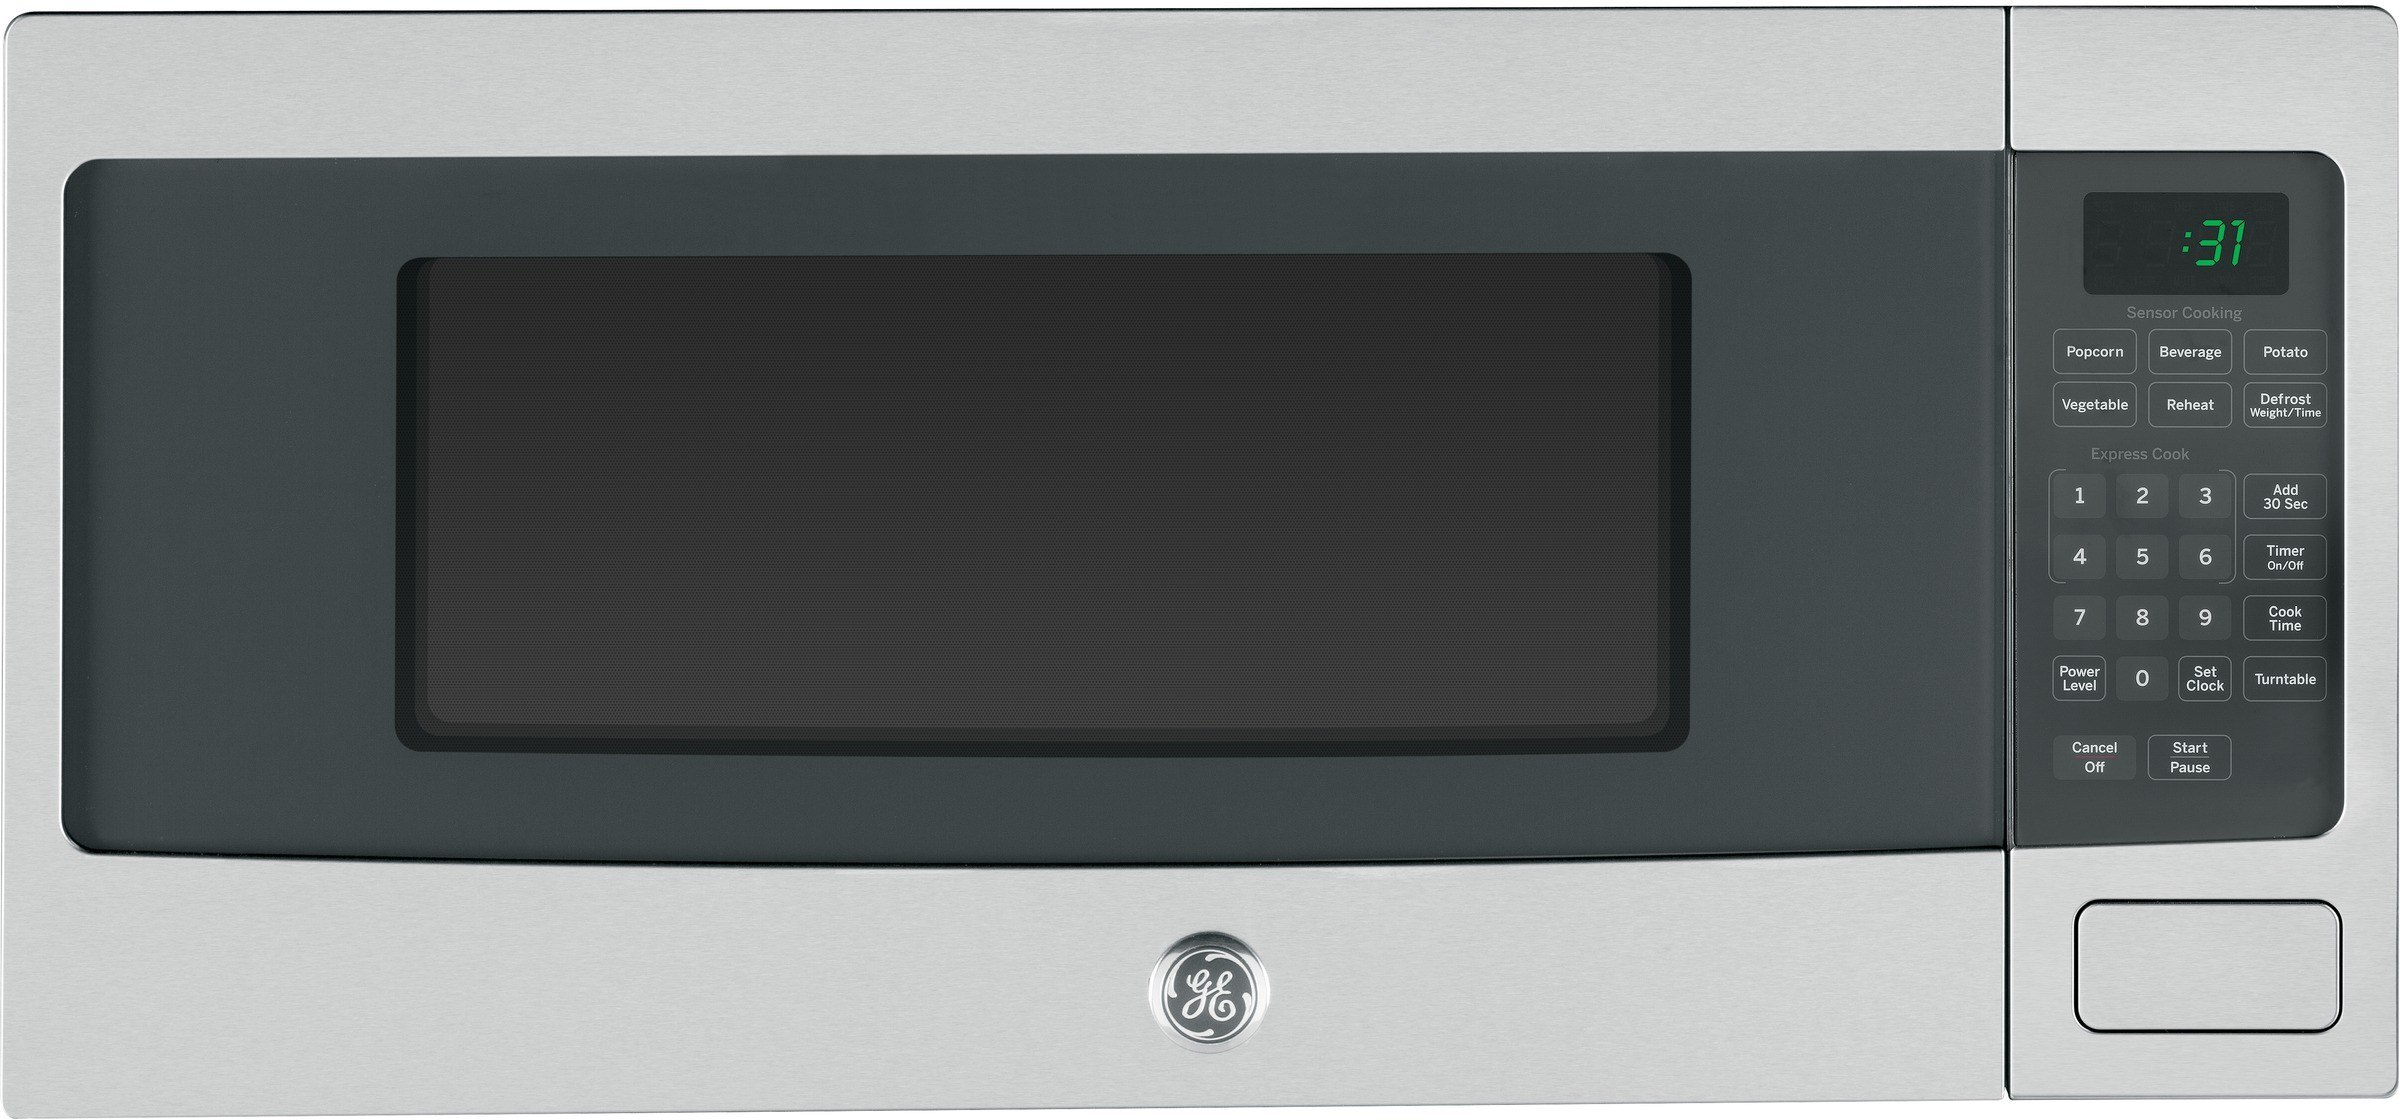 Ge Pem31sfss 1 1 Cu Ft Countertop Microwave Oven With